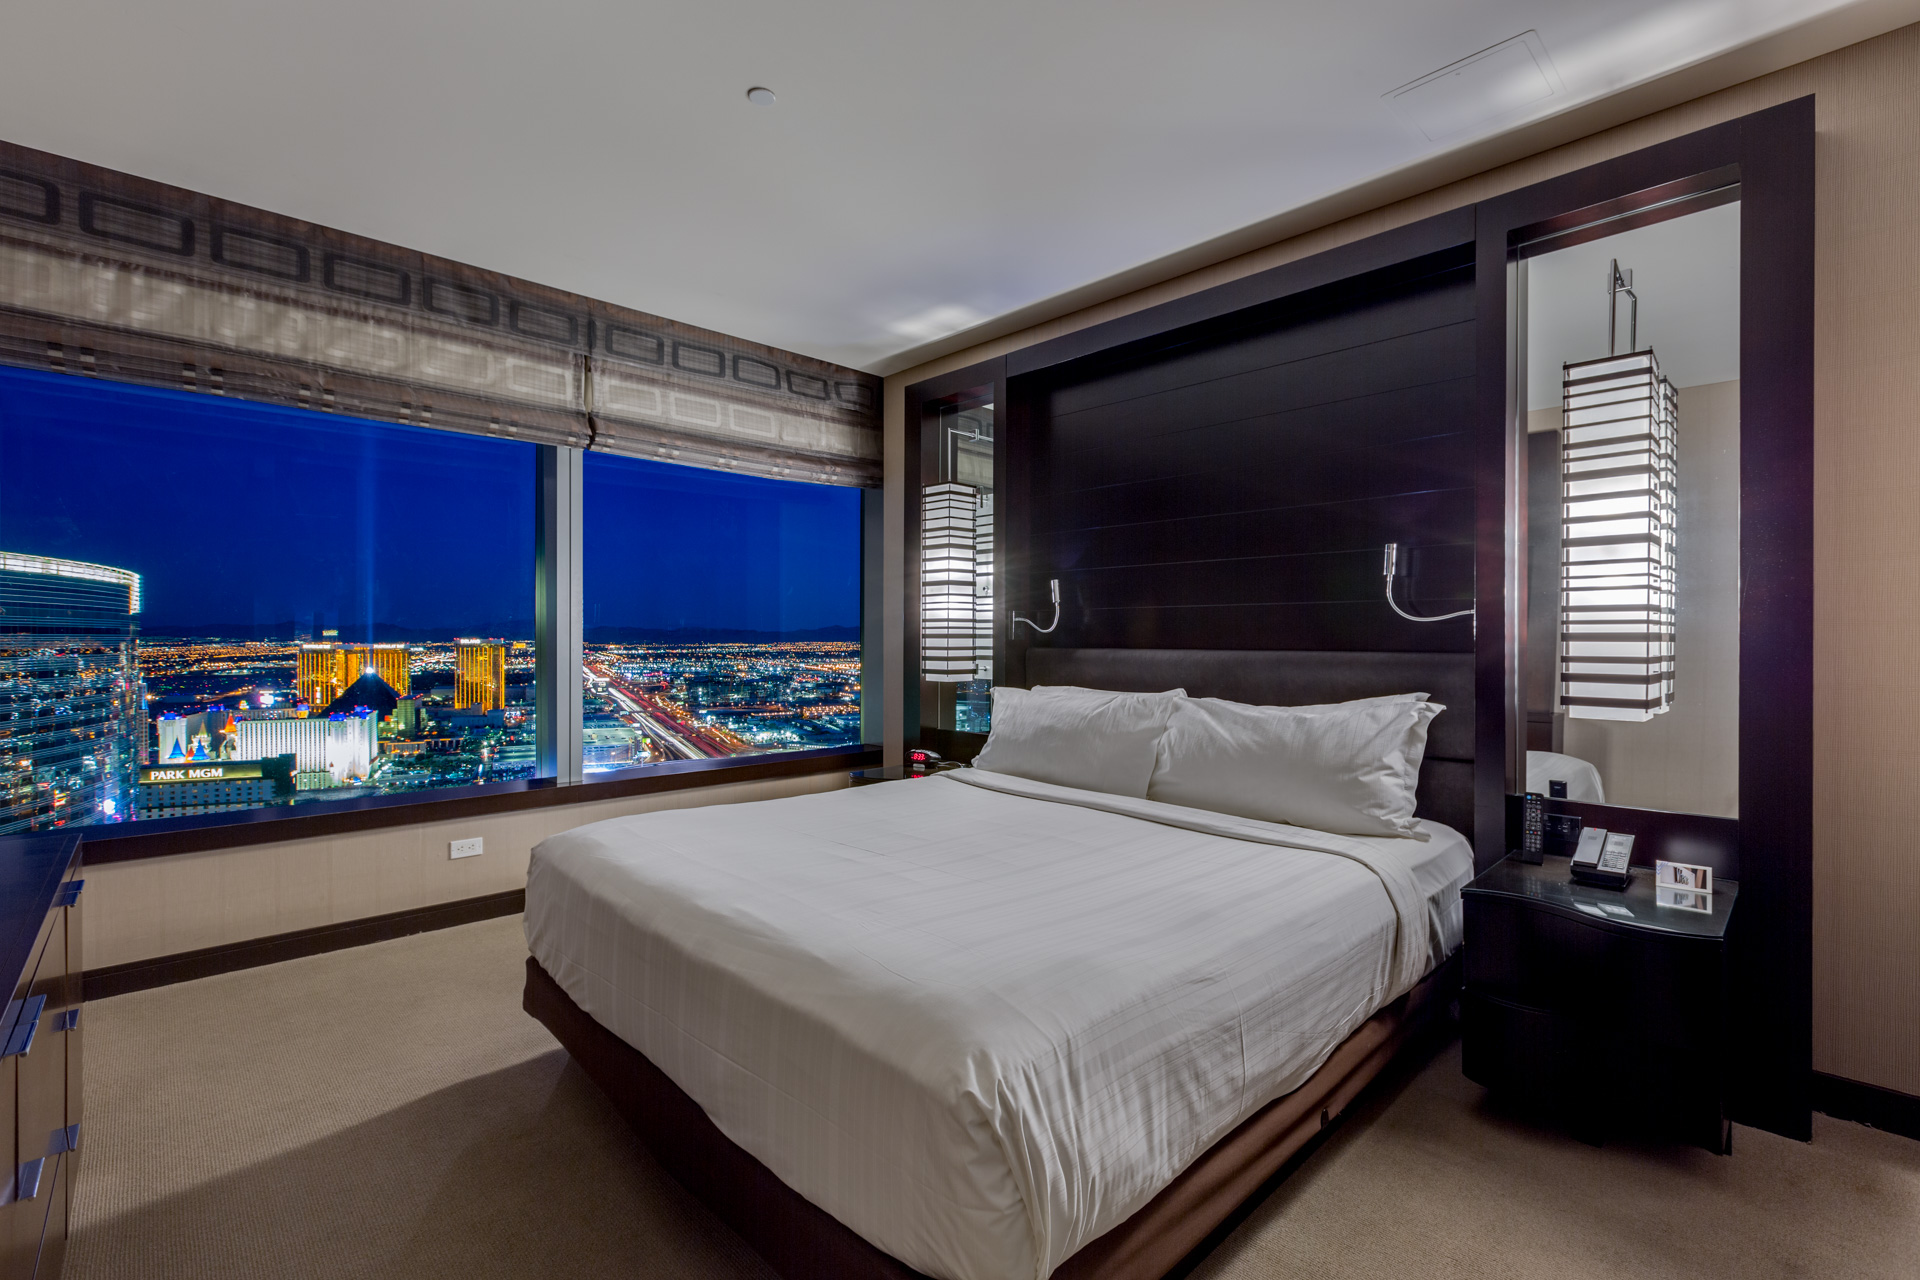 Suite 55019, Highest penthouse suite in Vegas, 2 bedrooms suites in Las Vegas, Secret Suites at Vdara